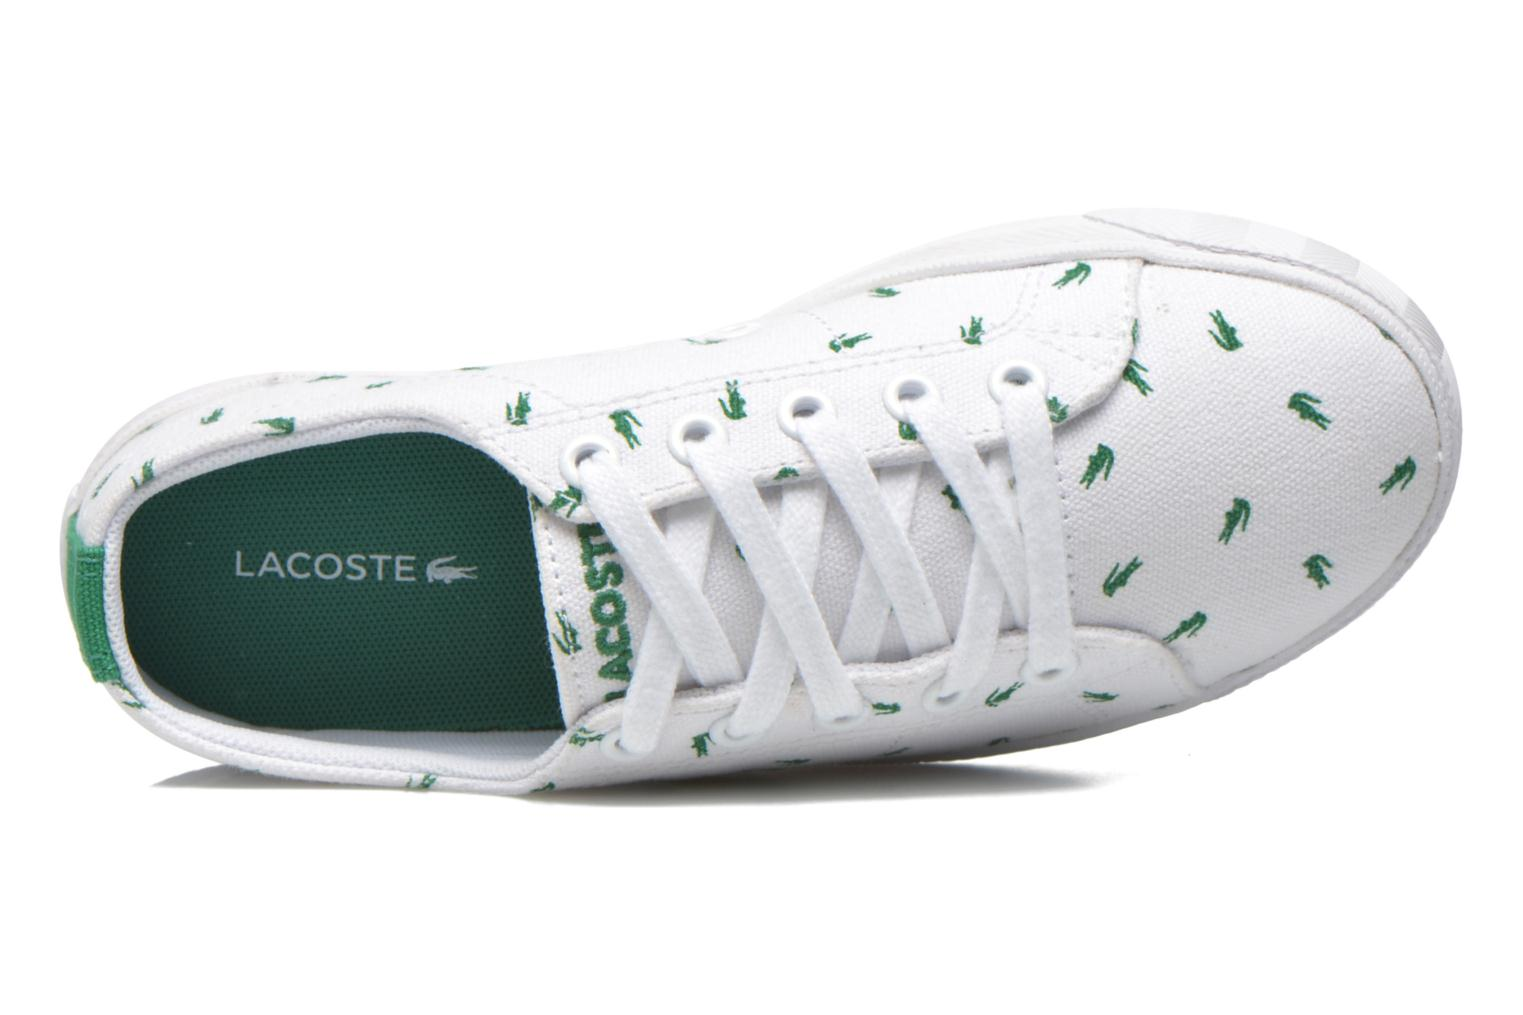 Marcel Lace Up 116 1 SPC White/green